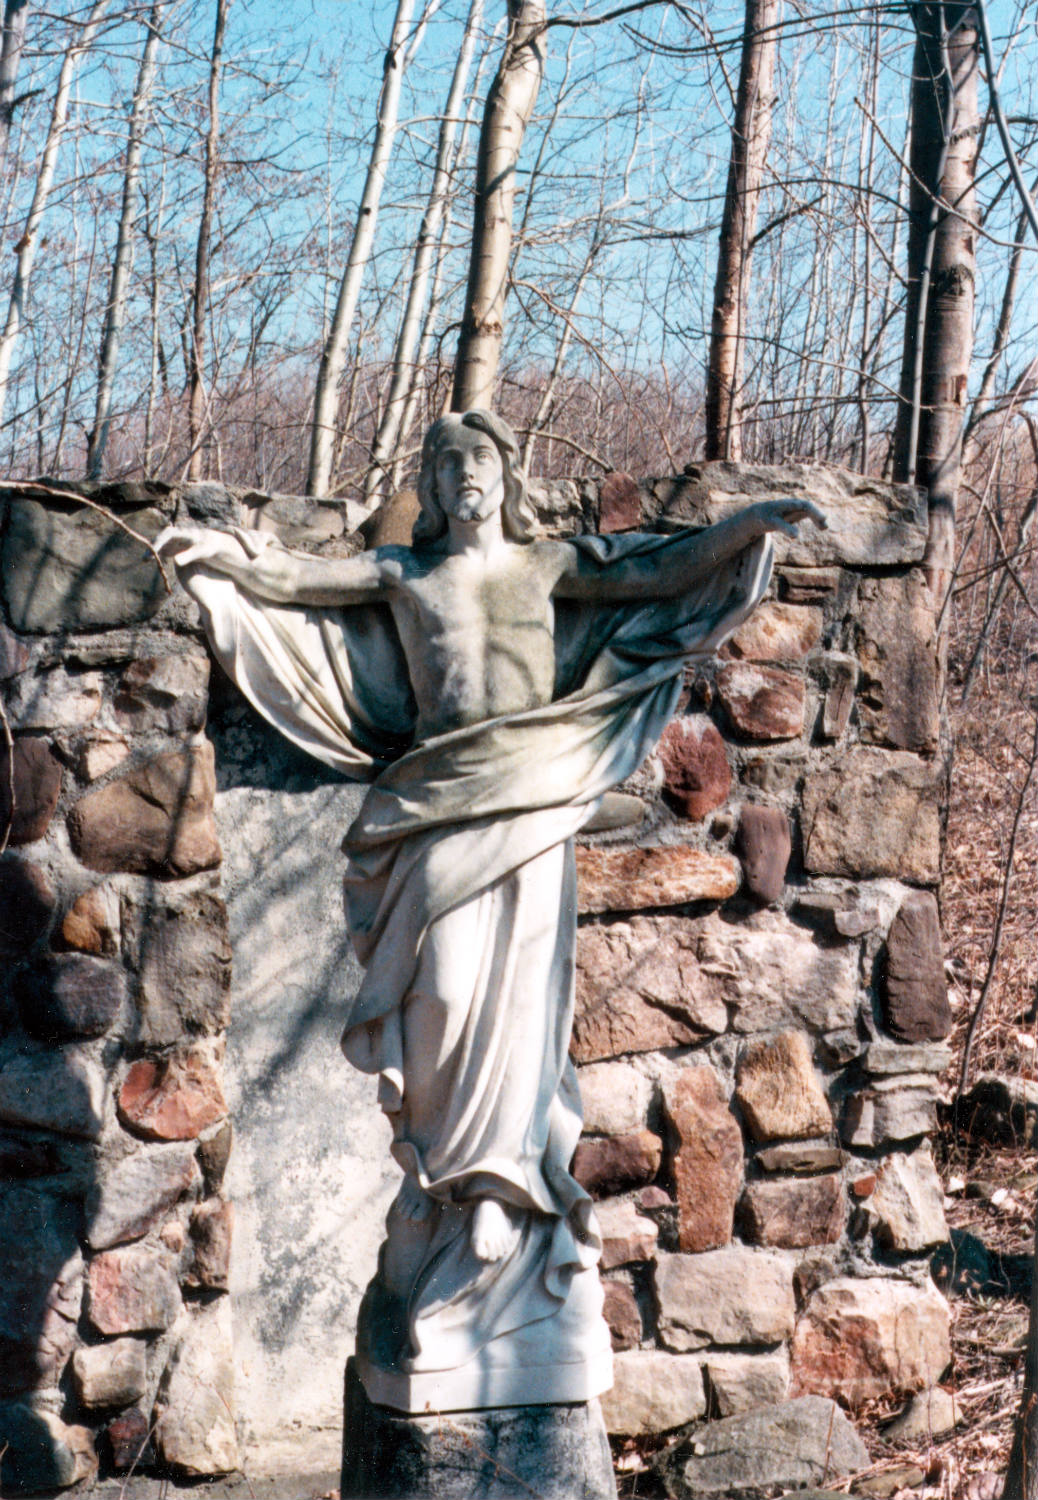 Jesus and Grotto at St. Michael's Mission in Conesus